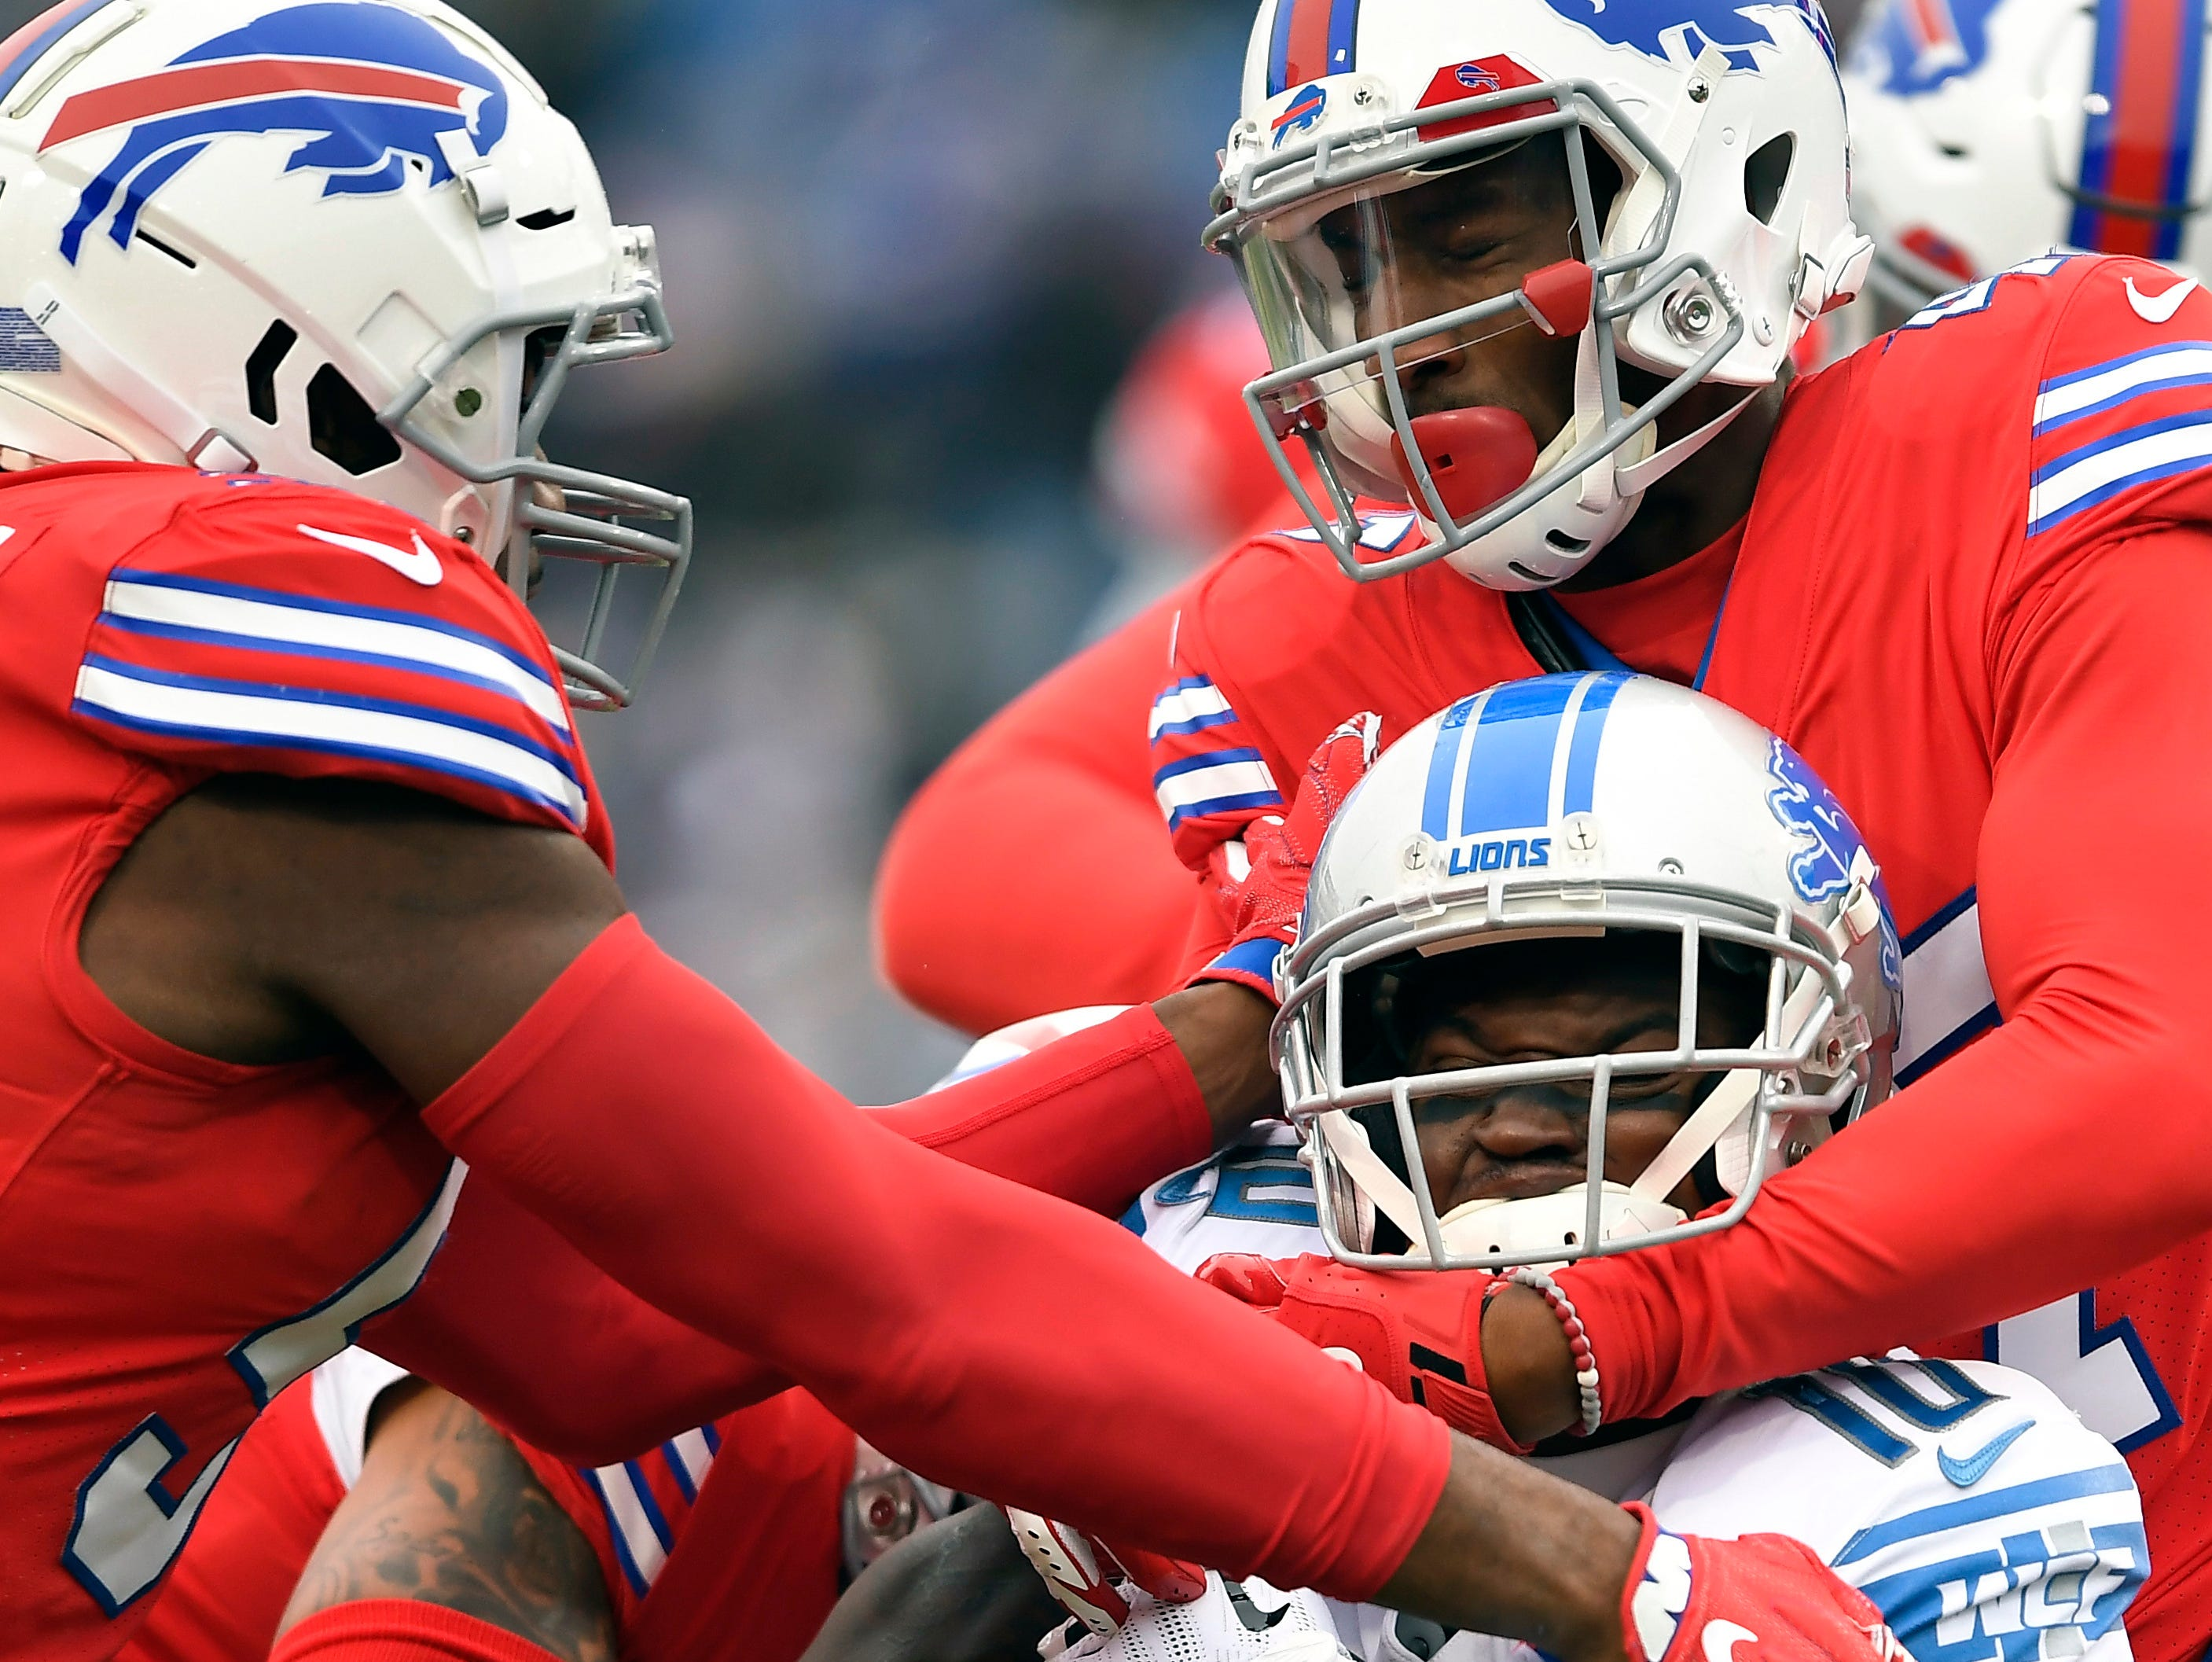 Detroit Lions wide receiver Brandon Powell (10) is tackled by the Buffalo Bills during the first half.